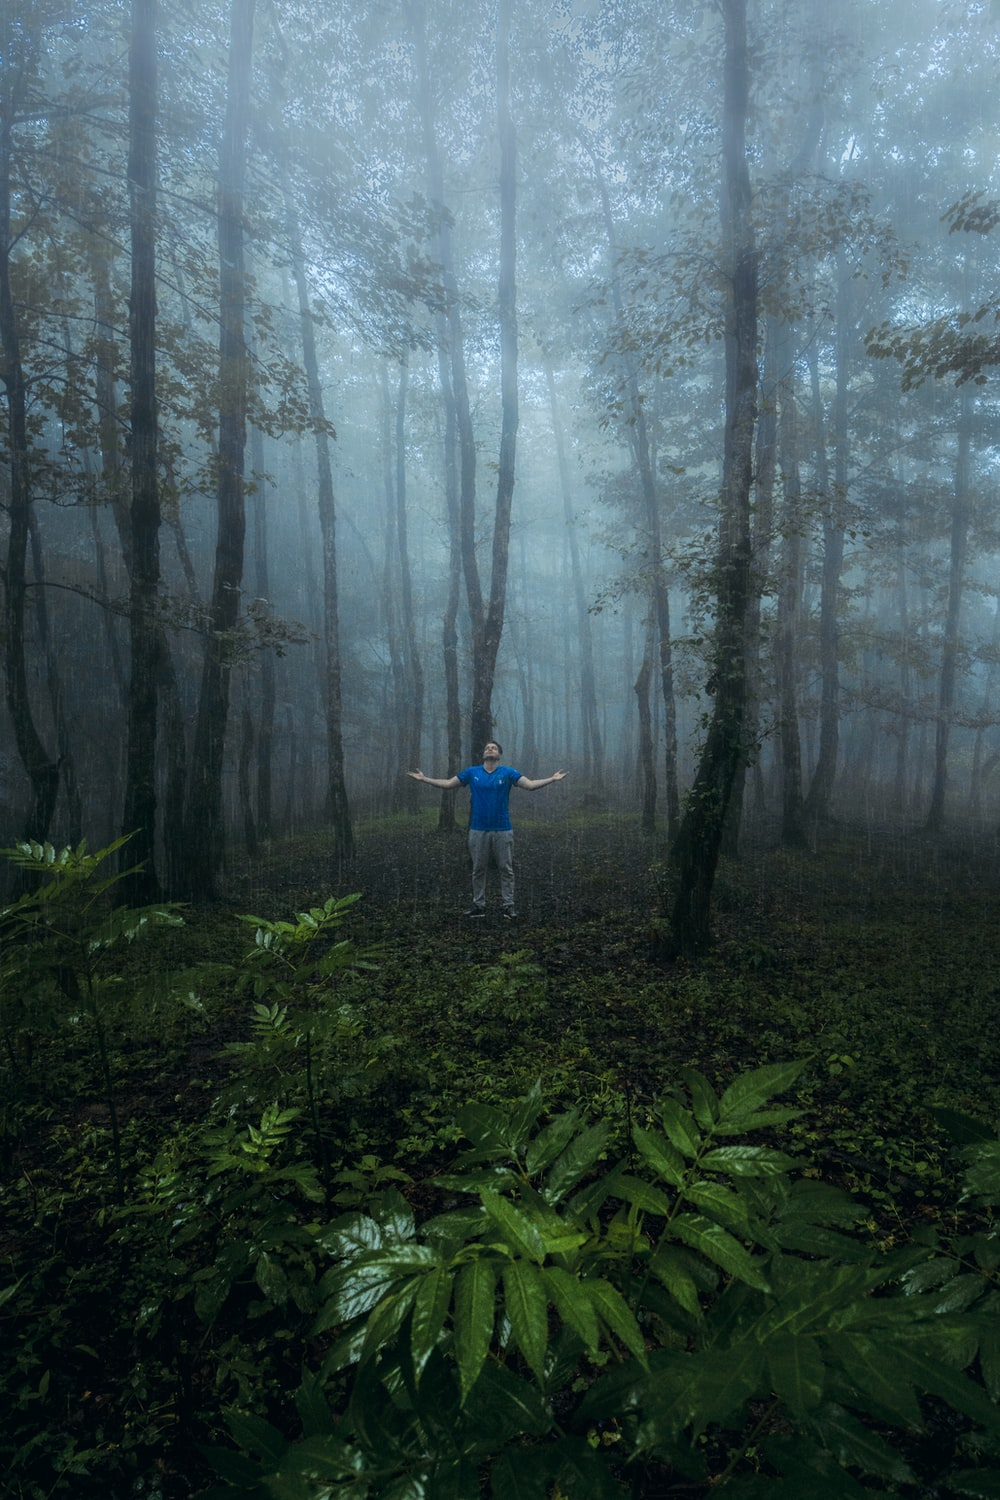 man in blue shirt standing on forest during daytime